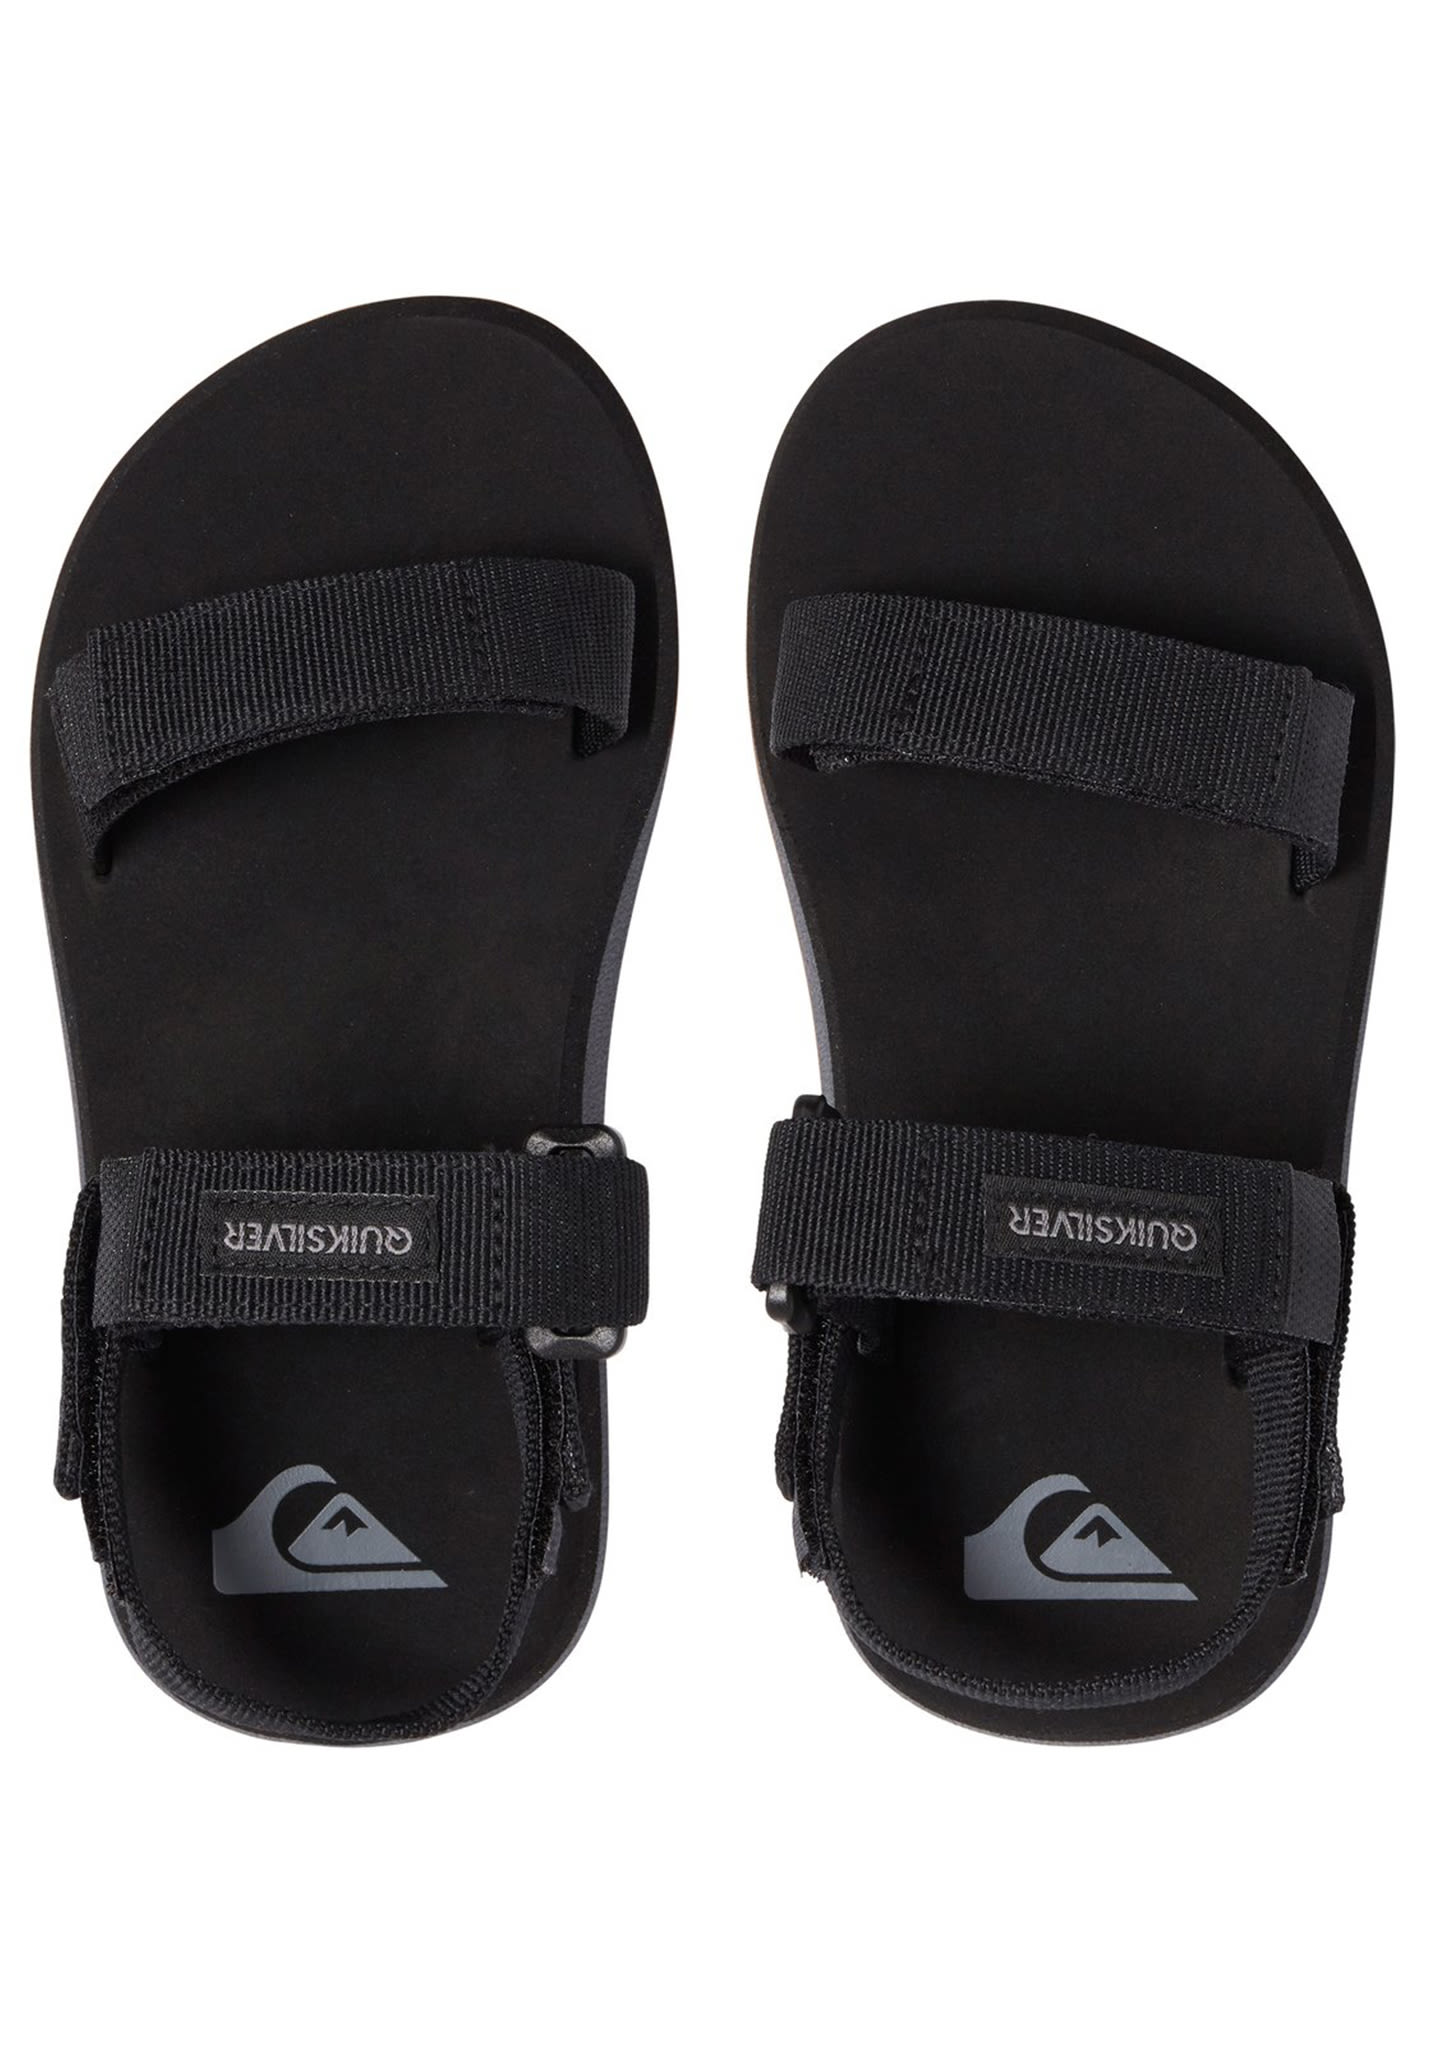 Sandals Kids Quiksilver Black Caged For Boys Monkey EIH29WD